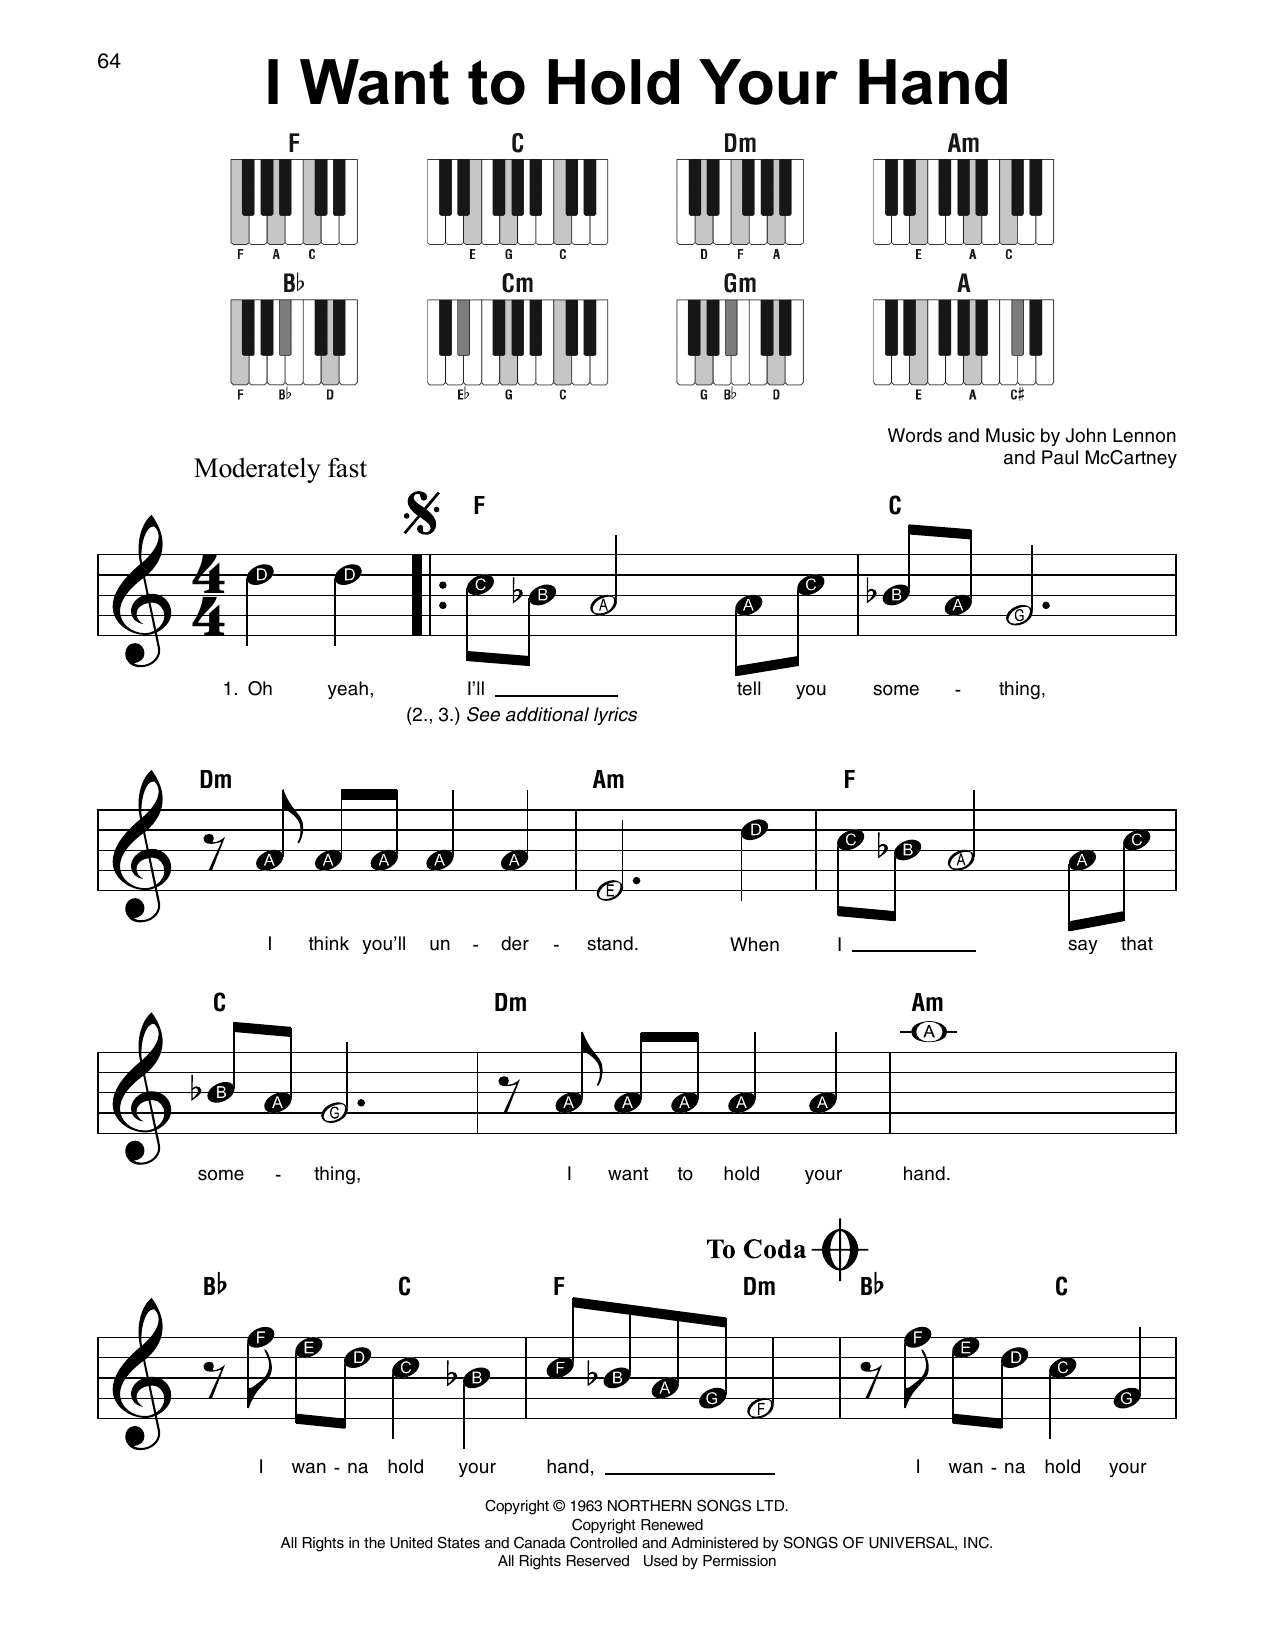 I Want To Hold Your Hand Sheet Music | The Beatles | Super Easy Piano